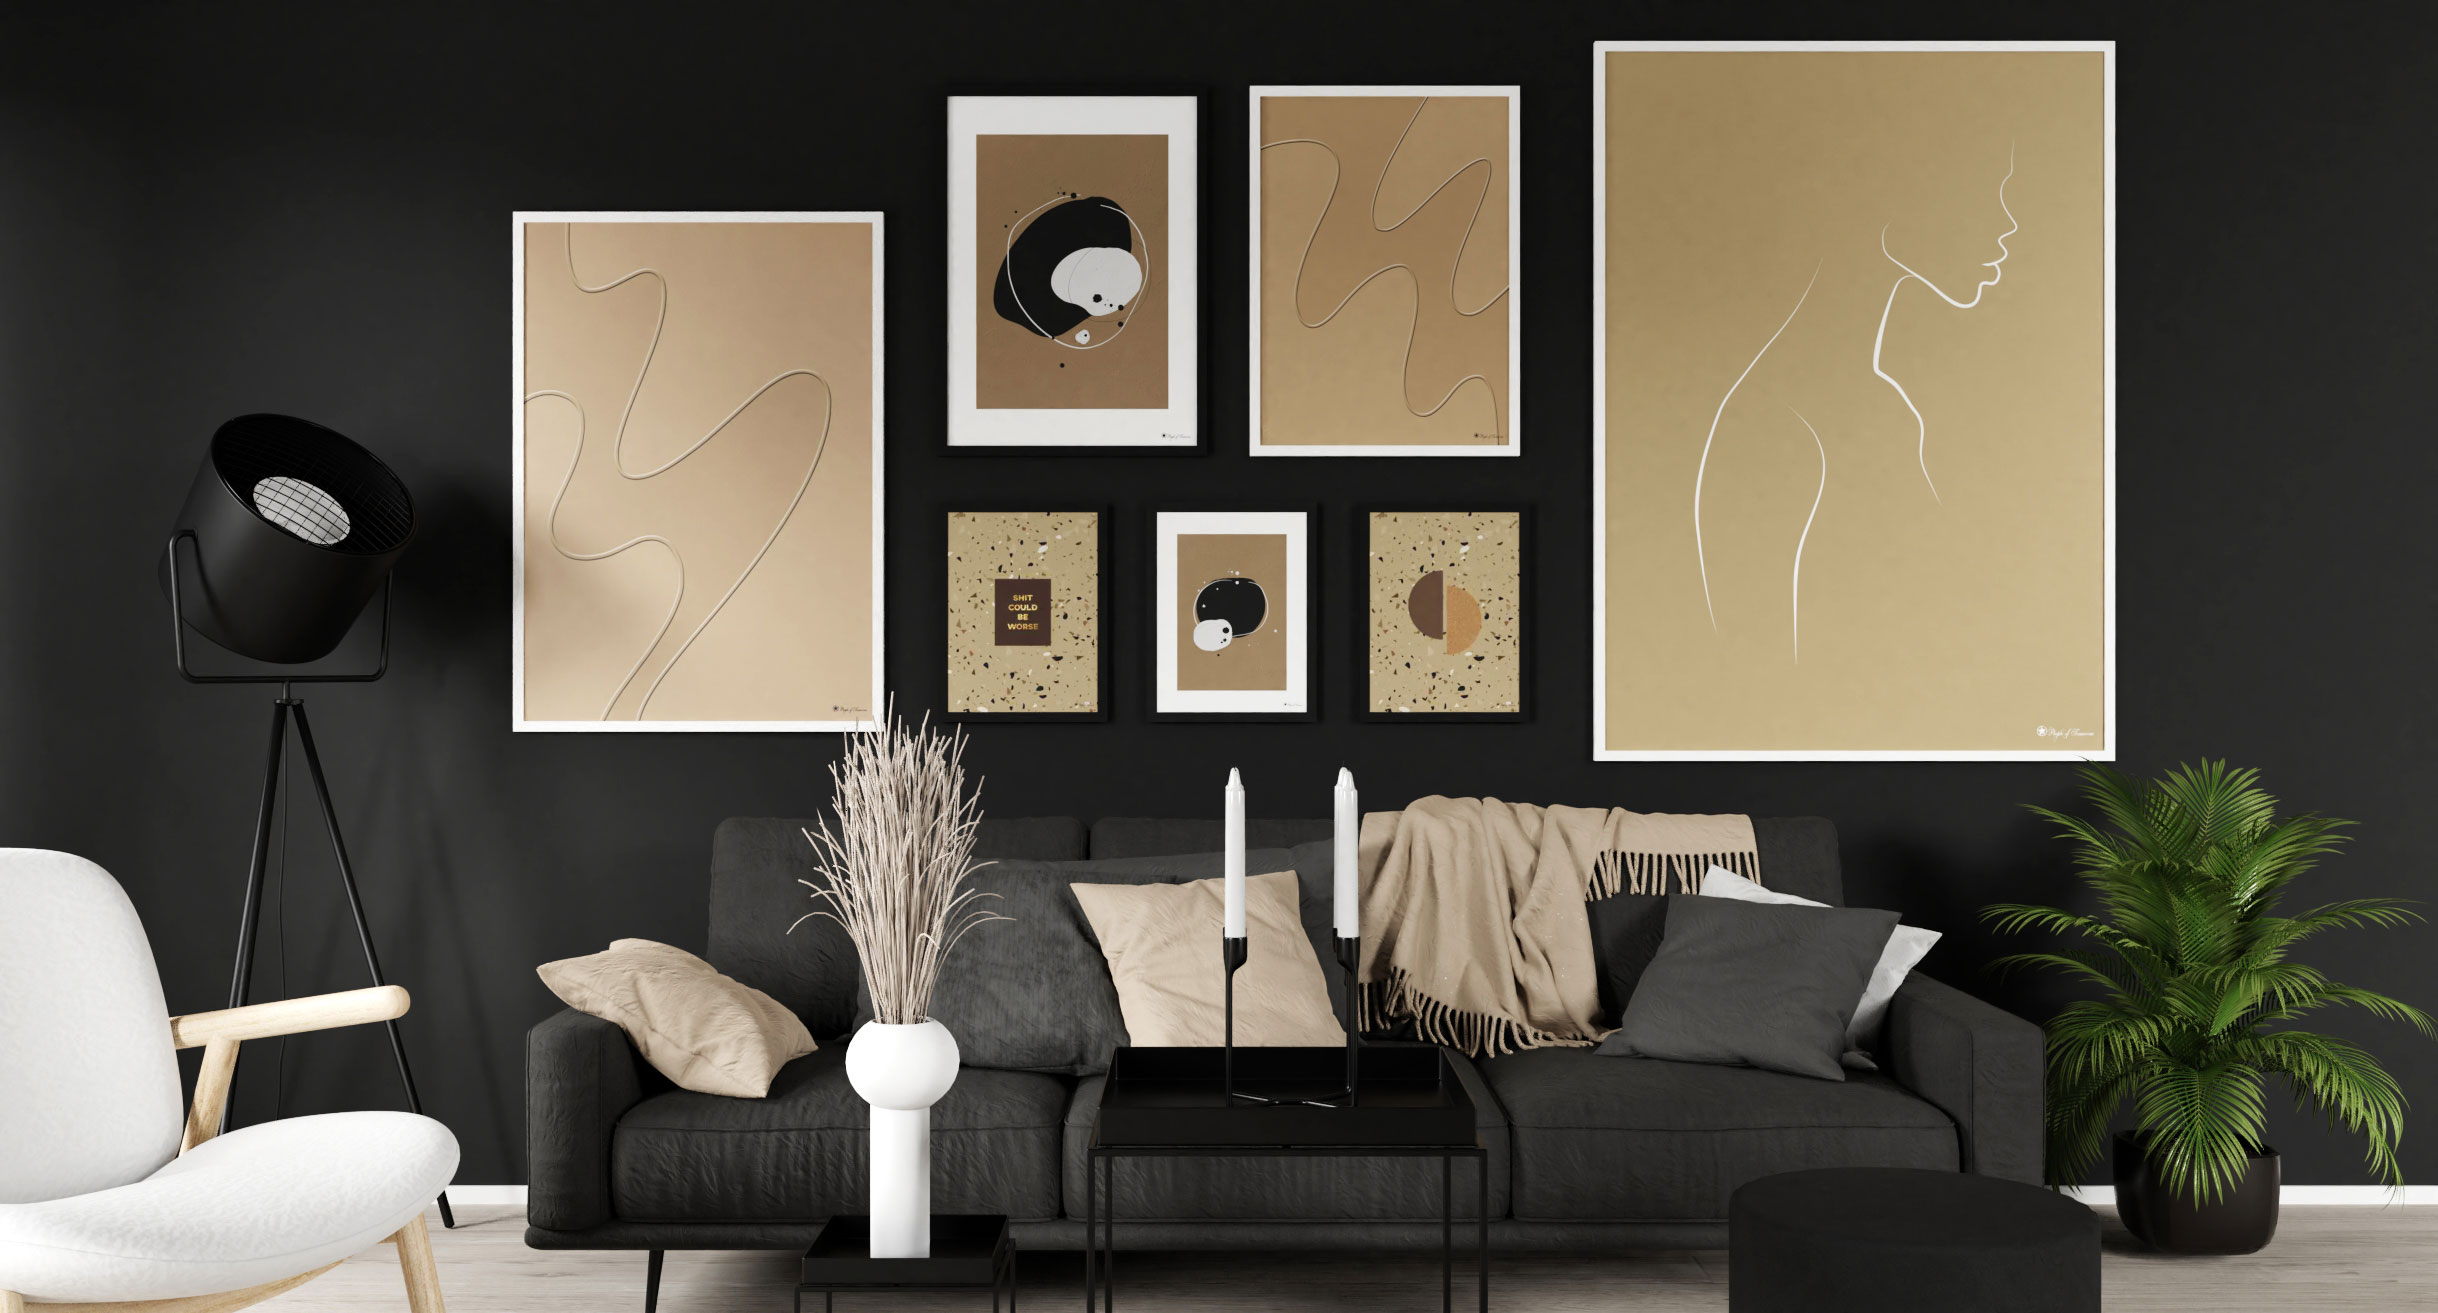 Posters that will pop on black walls | Blog